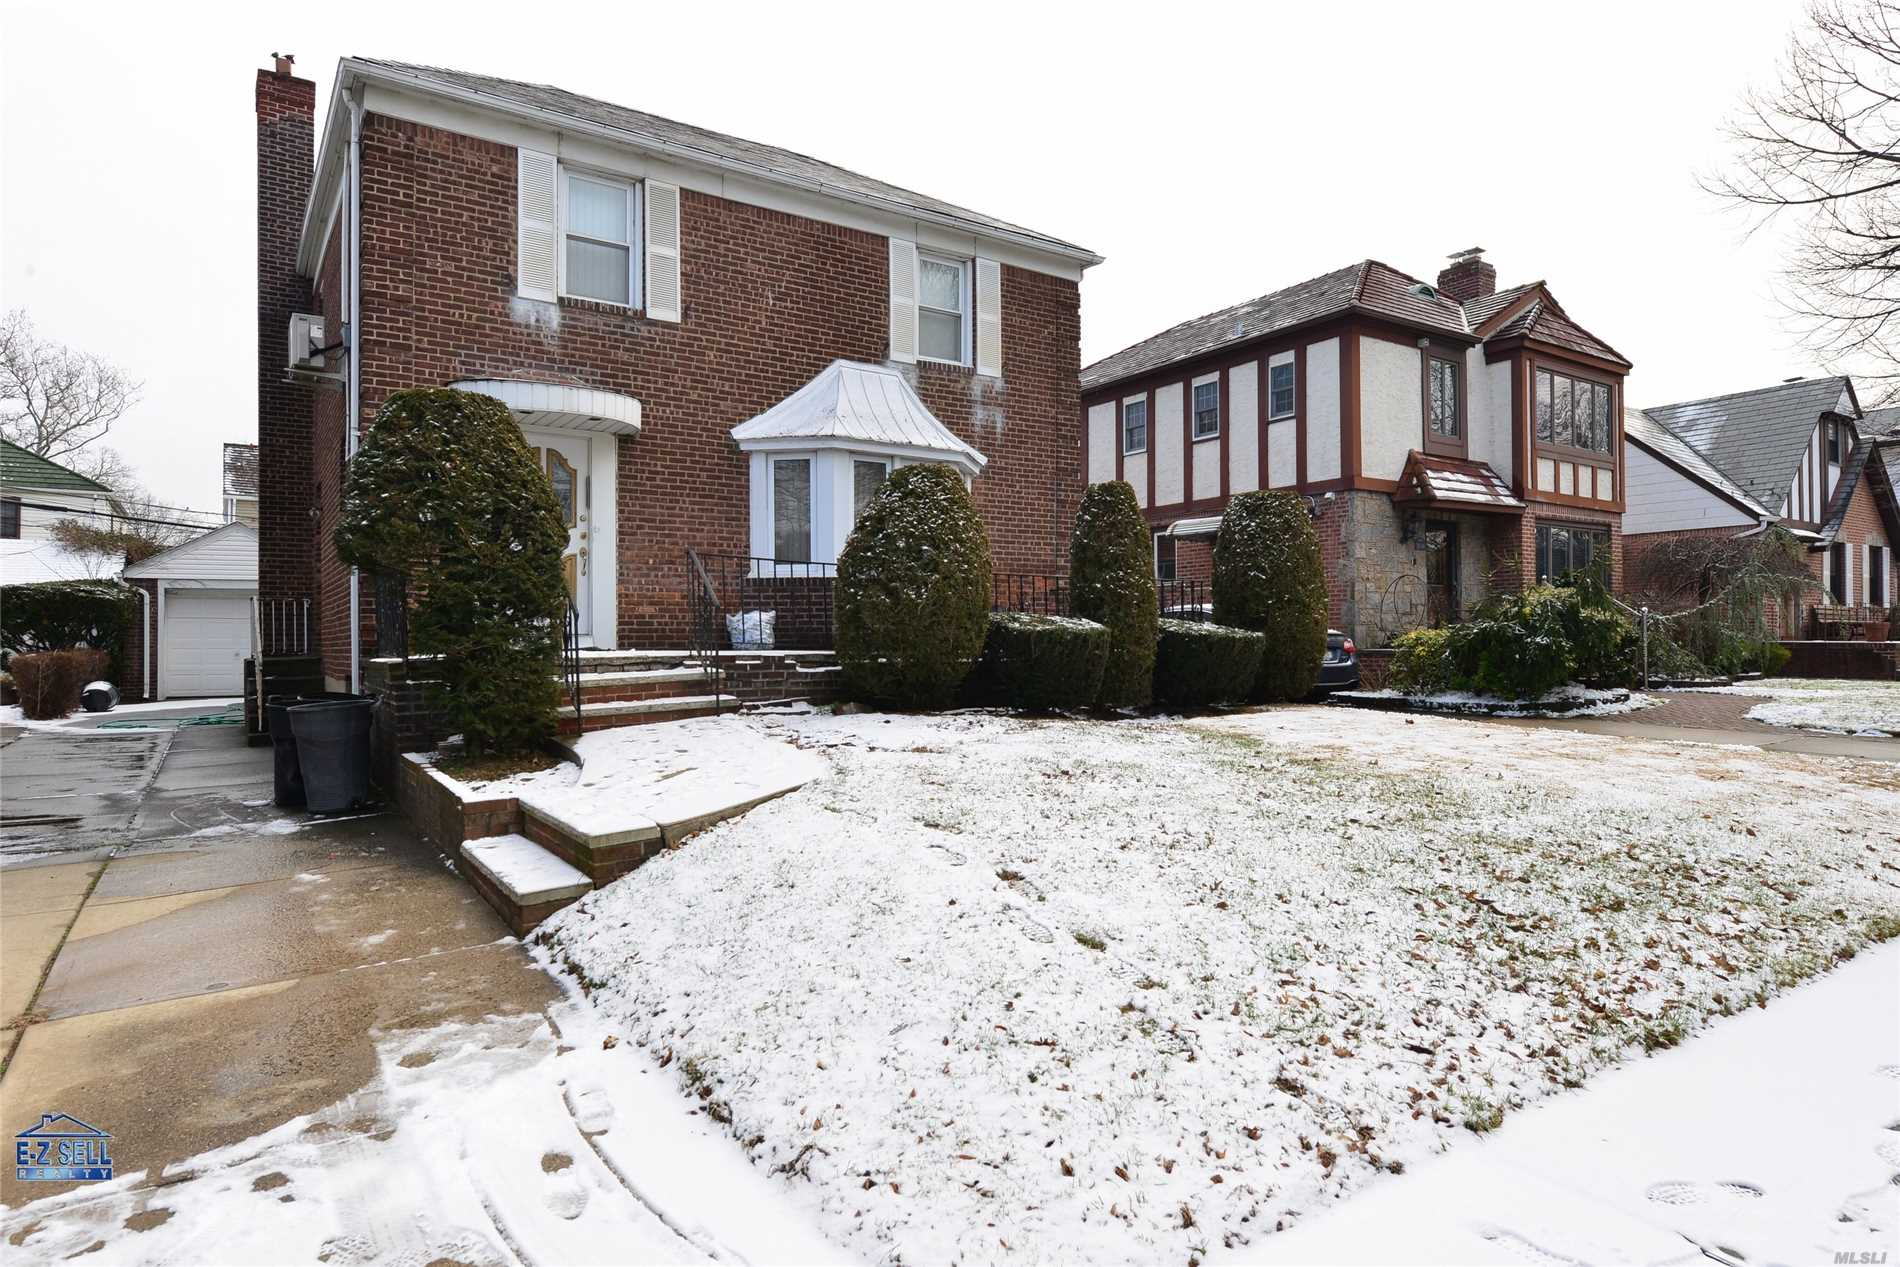 Huge, Extended, Rarely Found House In Prime Location Of Fresh Meadows. Detached House Features 5 Bedrooms, 2.5 Bathrooms, Large Eat-In Kitchen, Finished Basement And Central Air Conditioning System. Lot Size 42X100, Building Size 27X40. Excellent Location, Steps To Union Tpke,  Transportation.